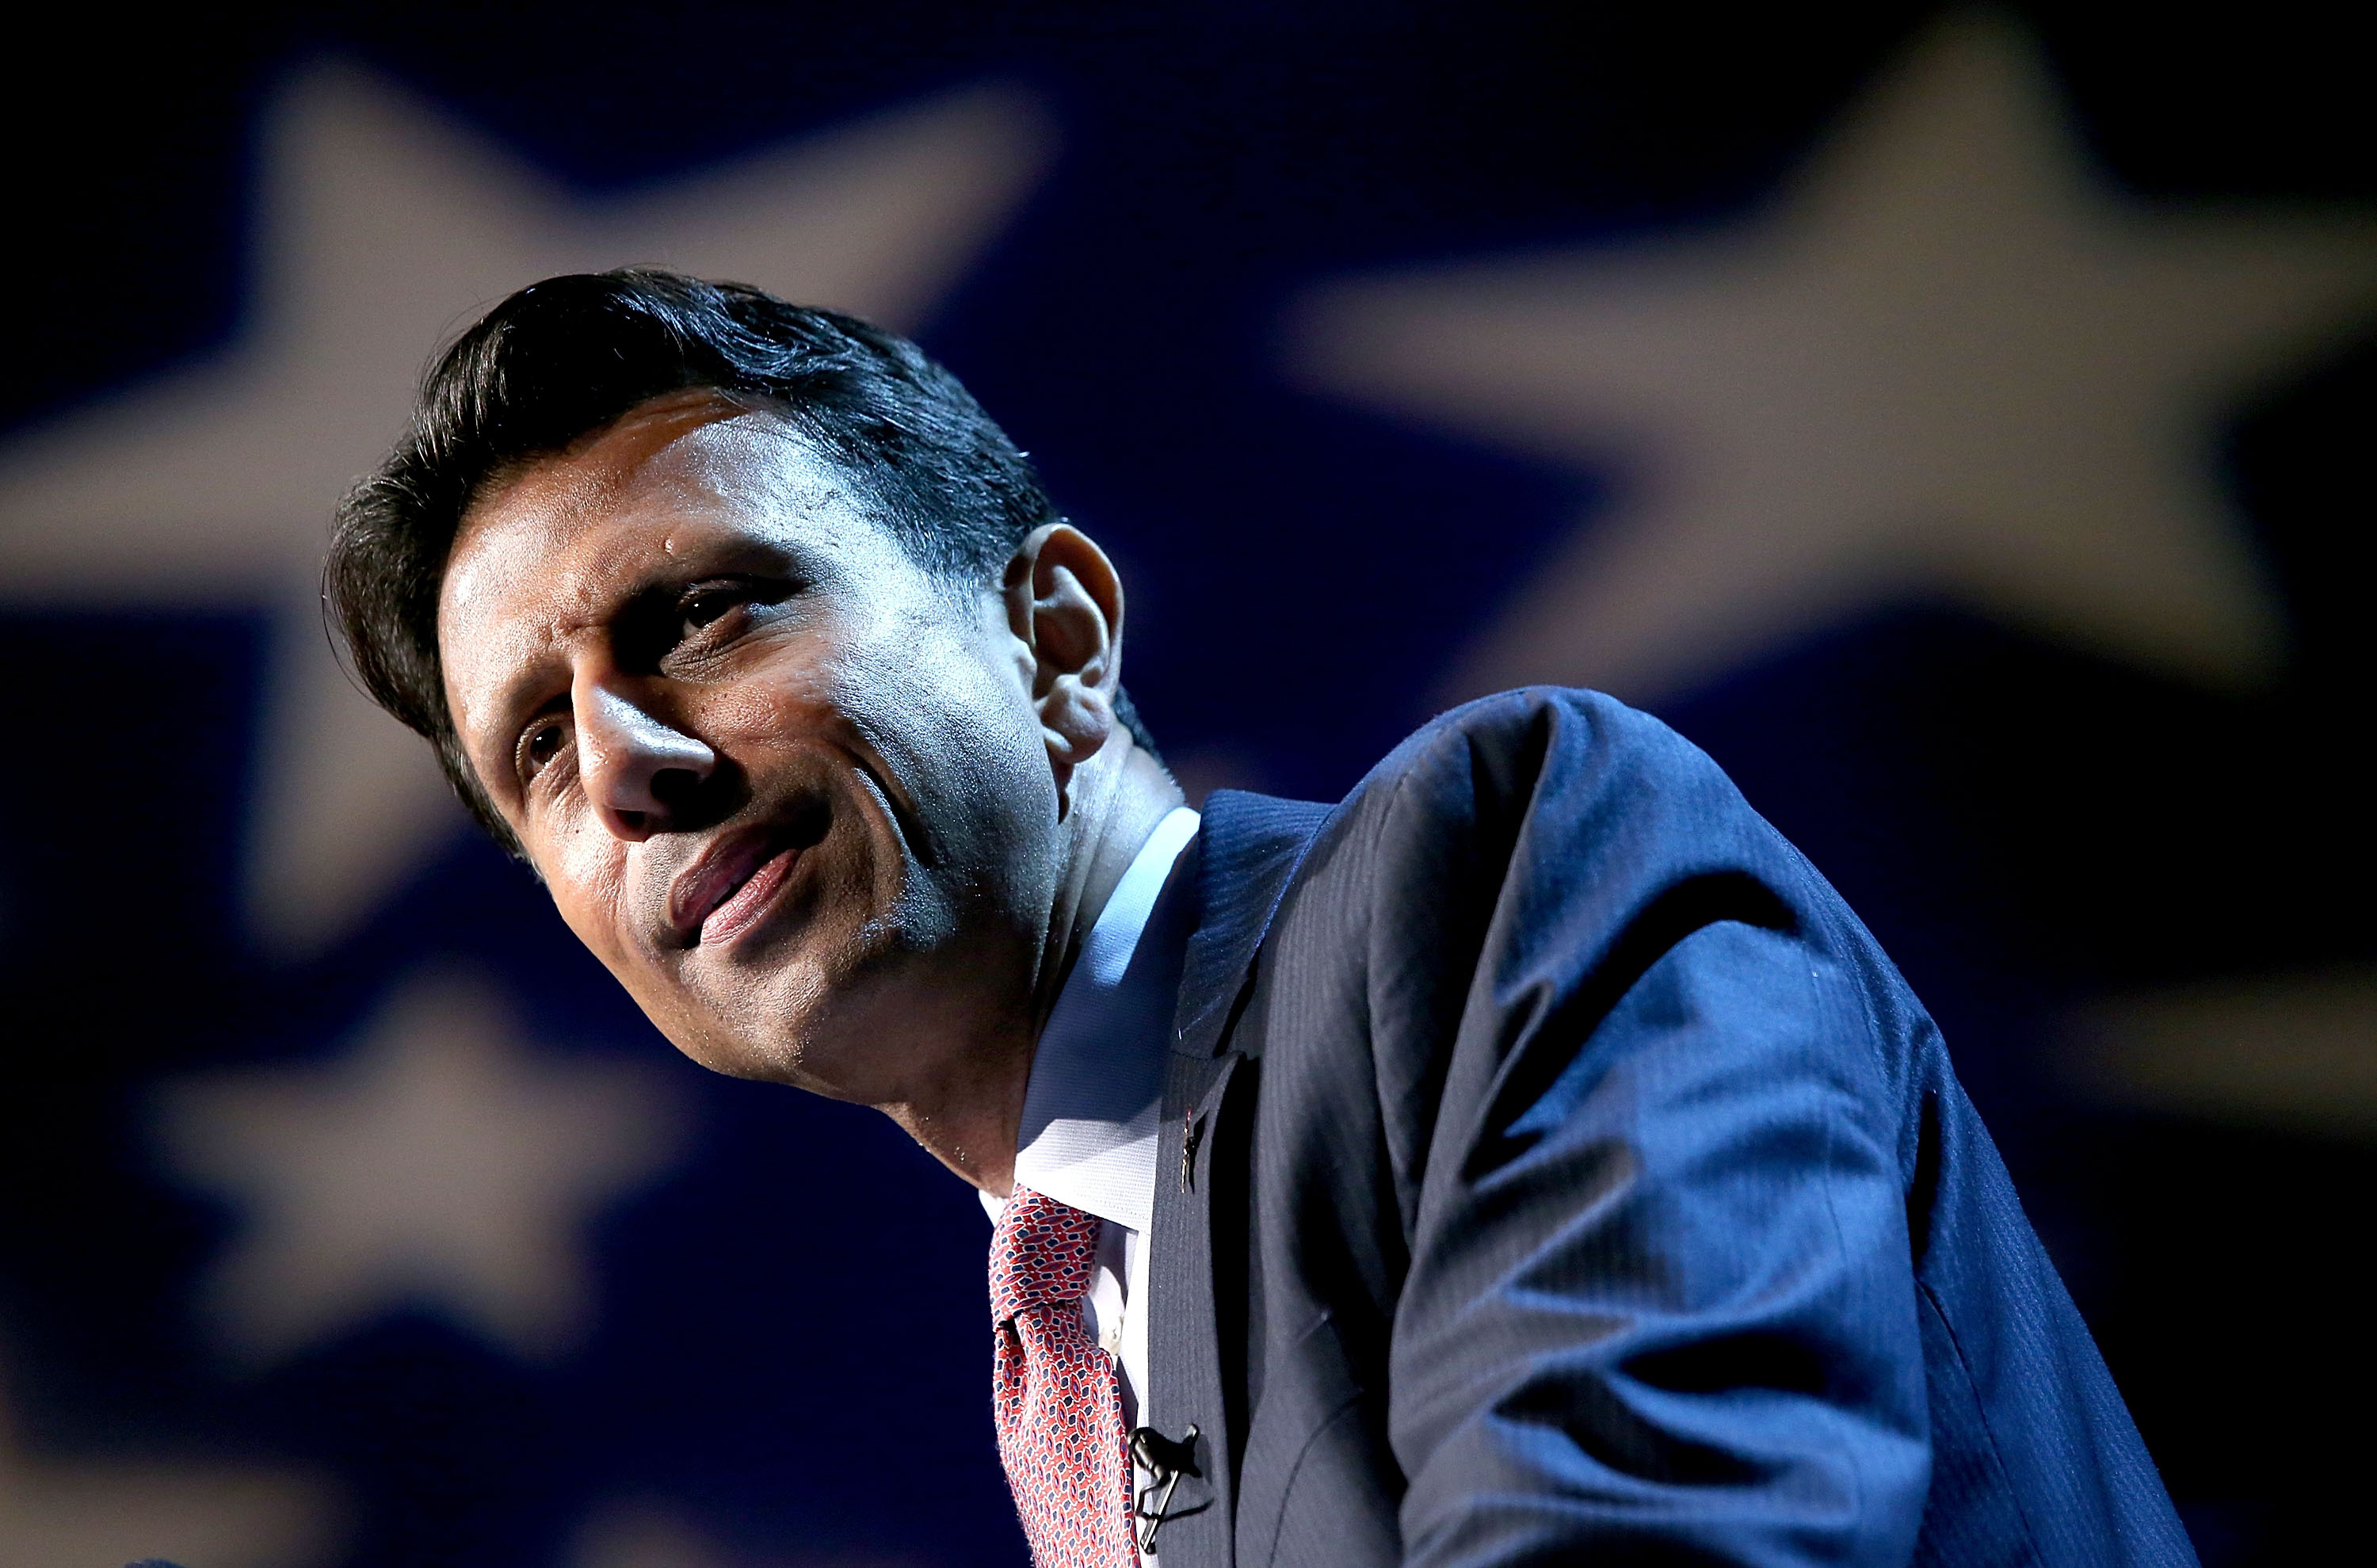 Louisiana Governor Bobby Jindal announces his candidacy for the 2016 Presidential nomination during a rally a he Pontchartrain Center in Kenner, Louisiana on June 24, 2015.